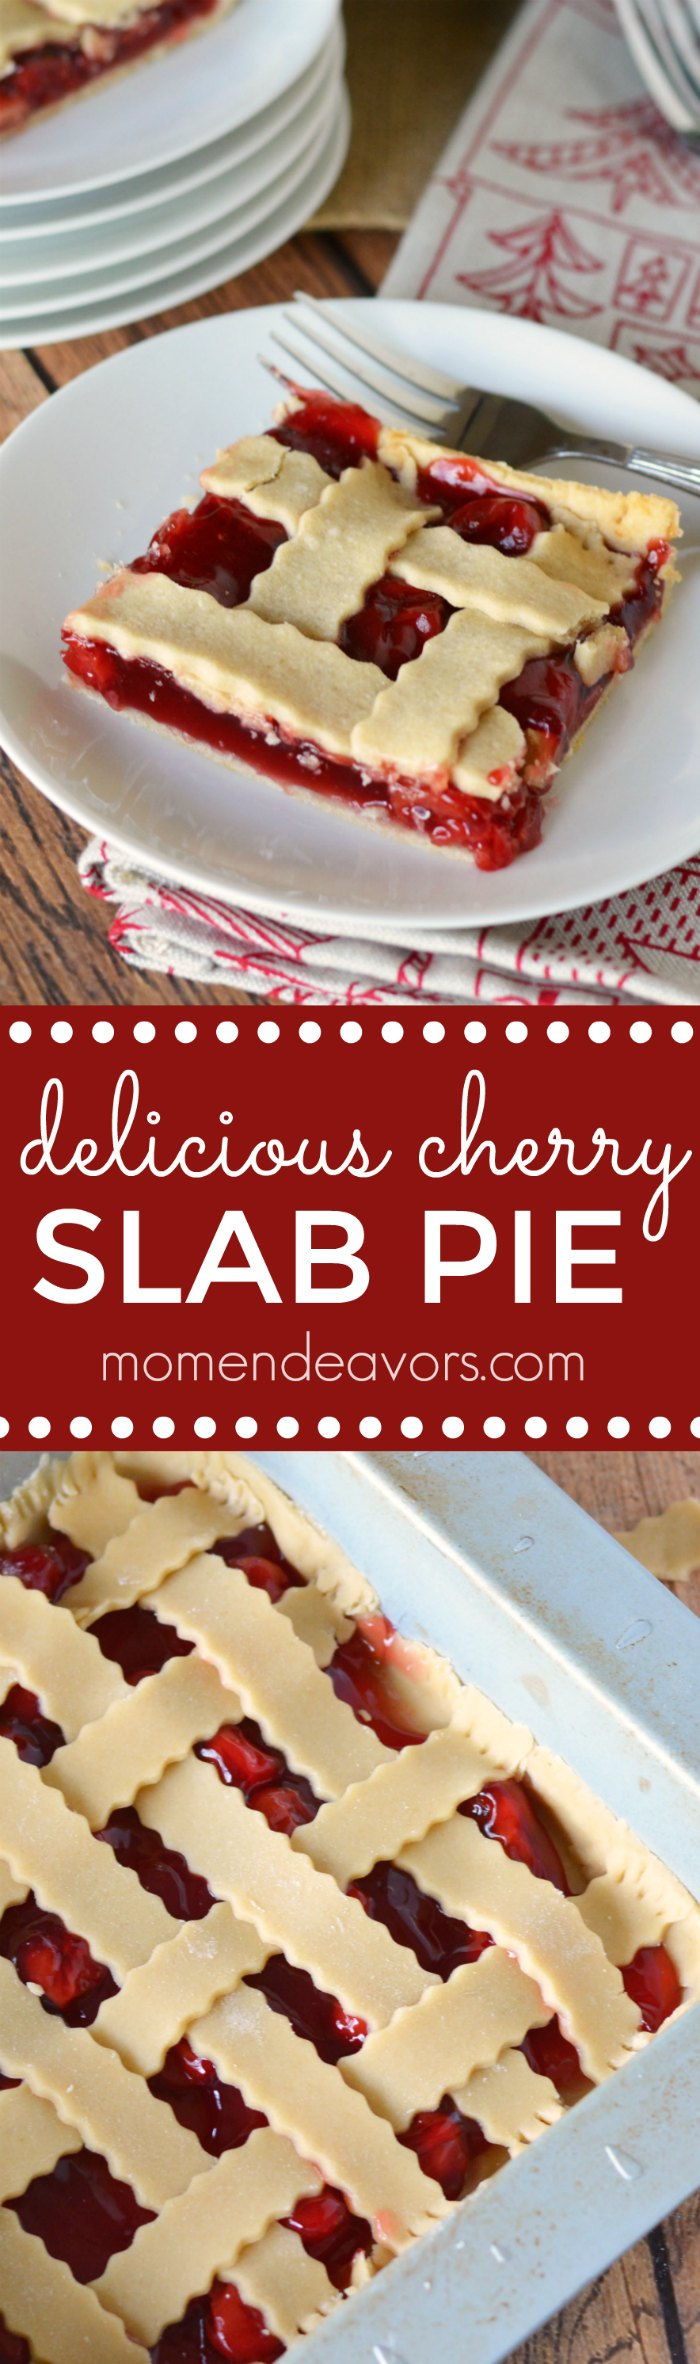 Delicious Cherry Slab Pie